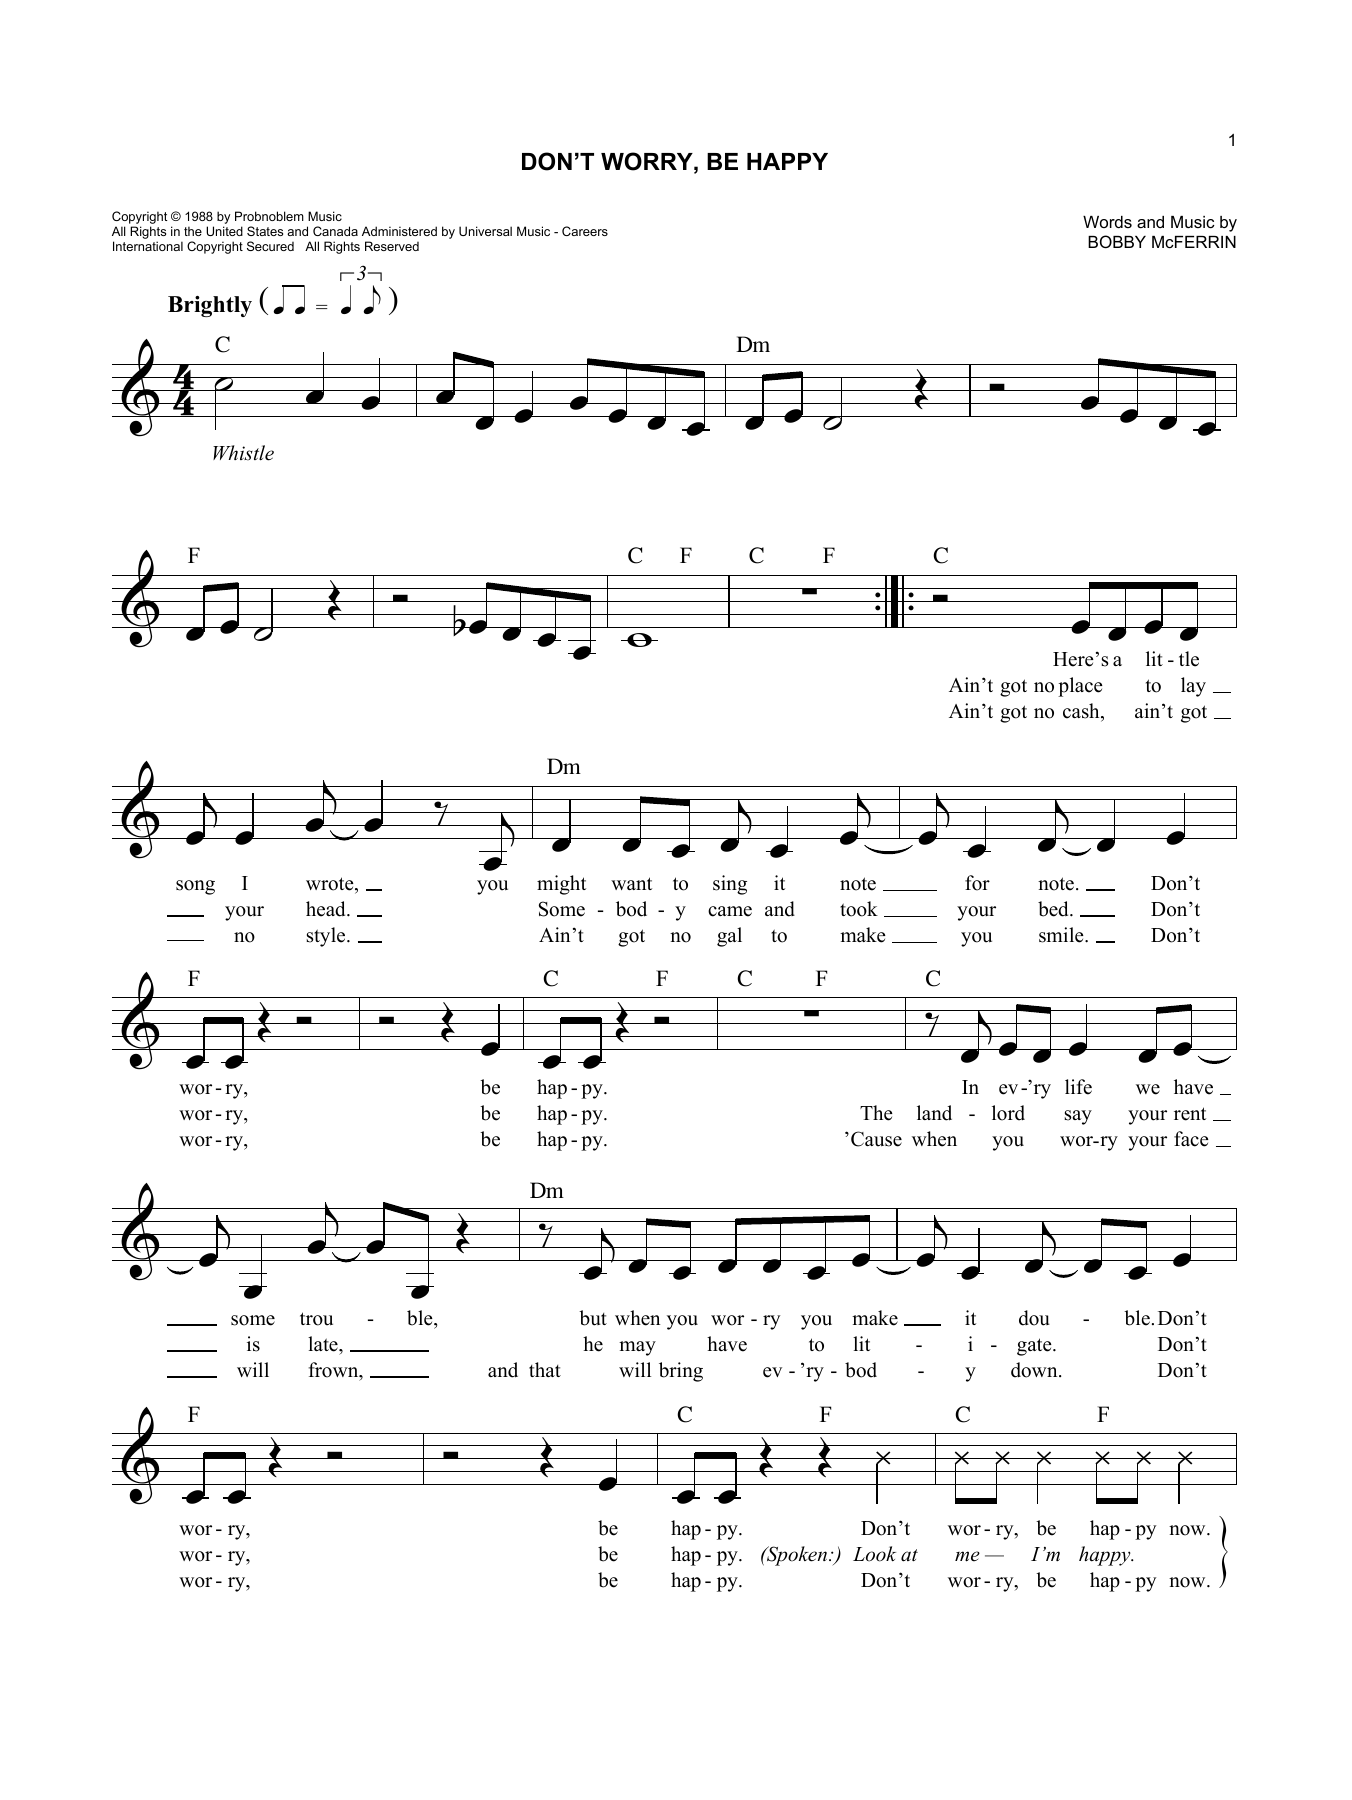 Bobby Mcferrin Dont Worry Be Happy Sheet Music Notes Chords